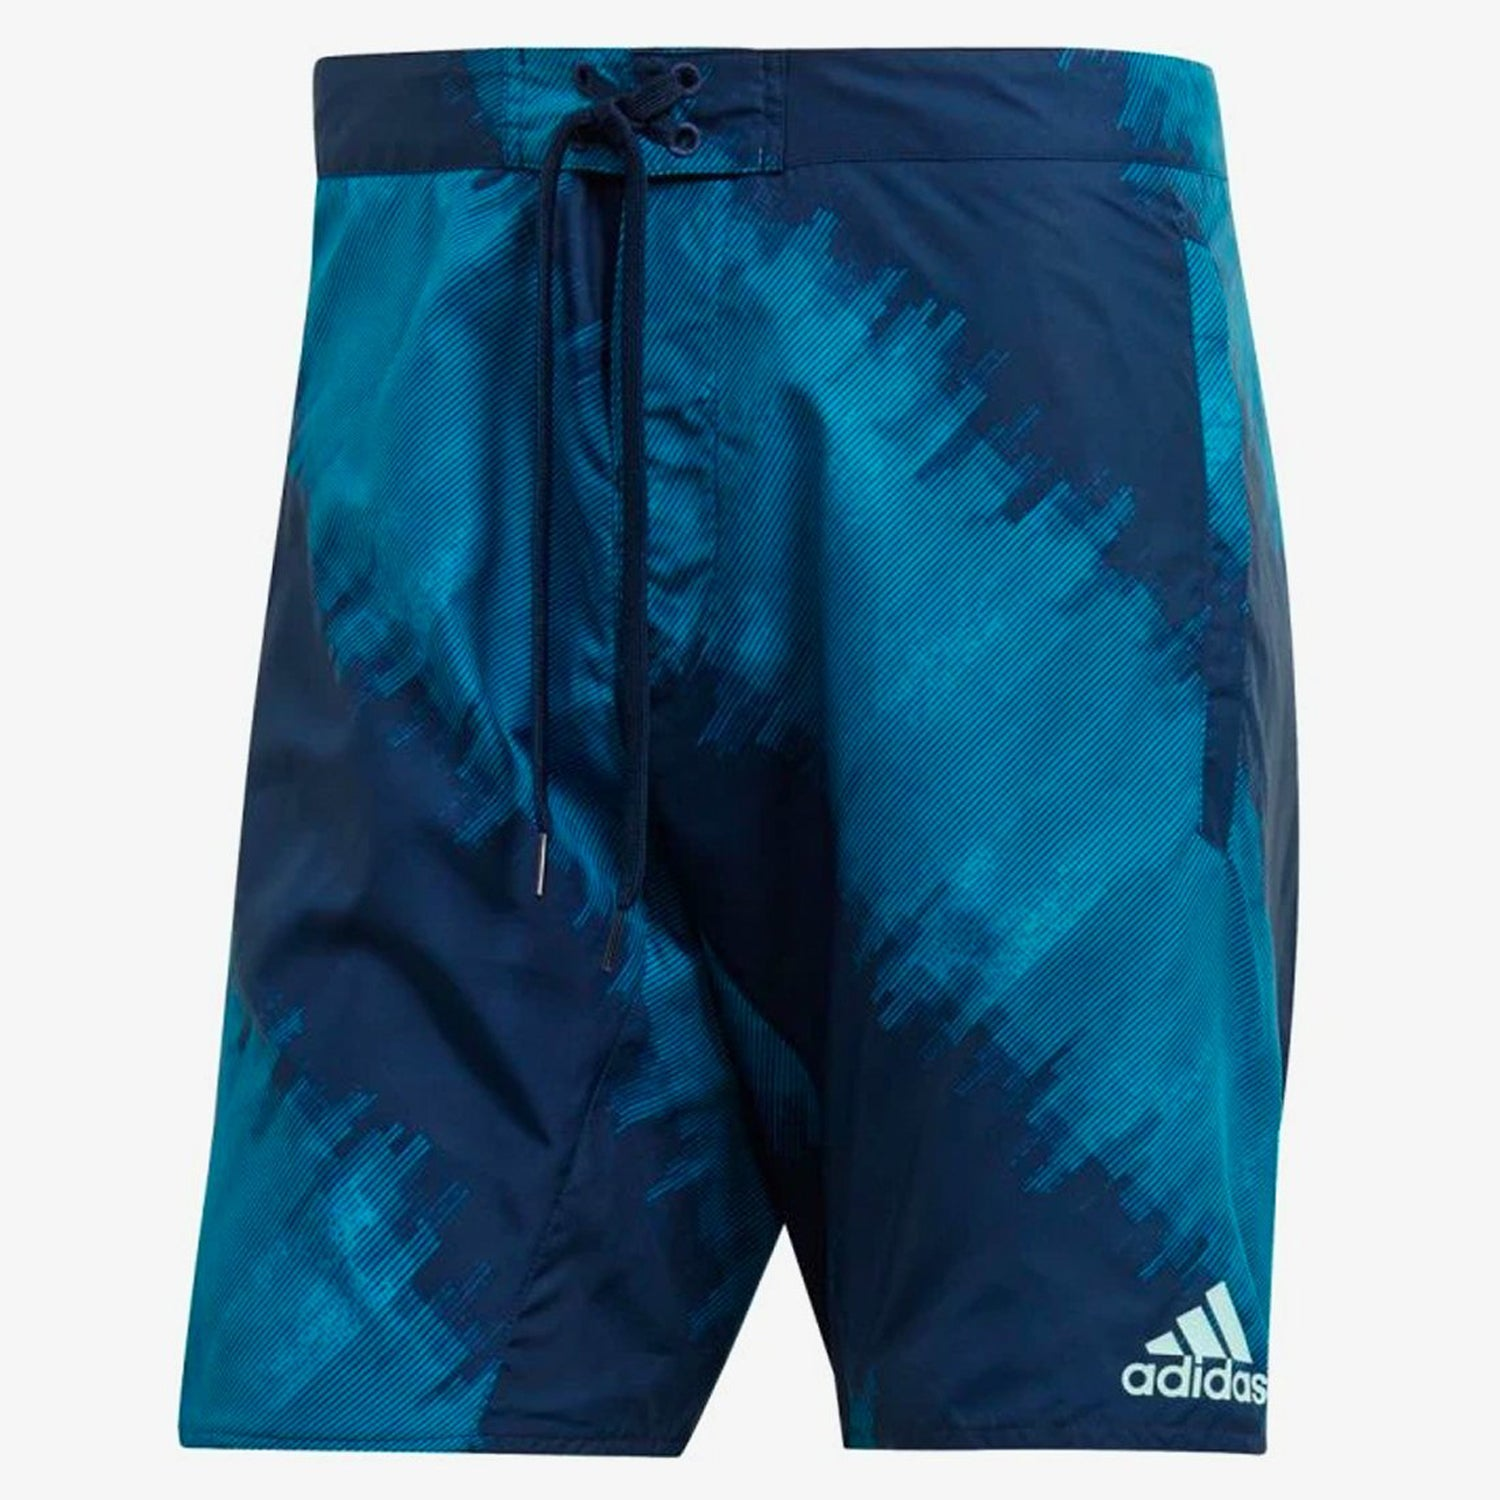 Argentina Board Short - Men's